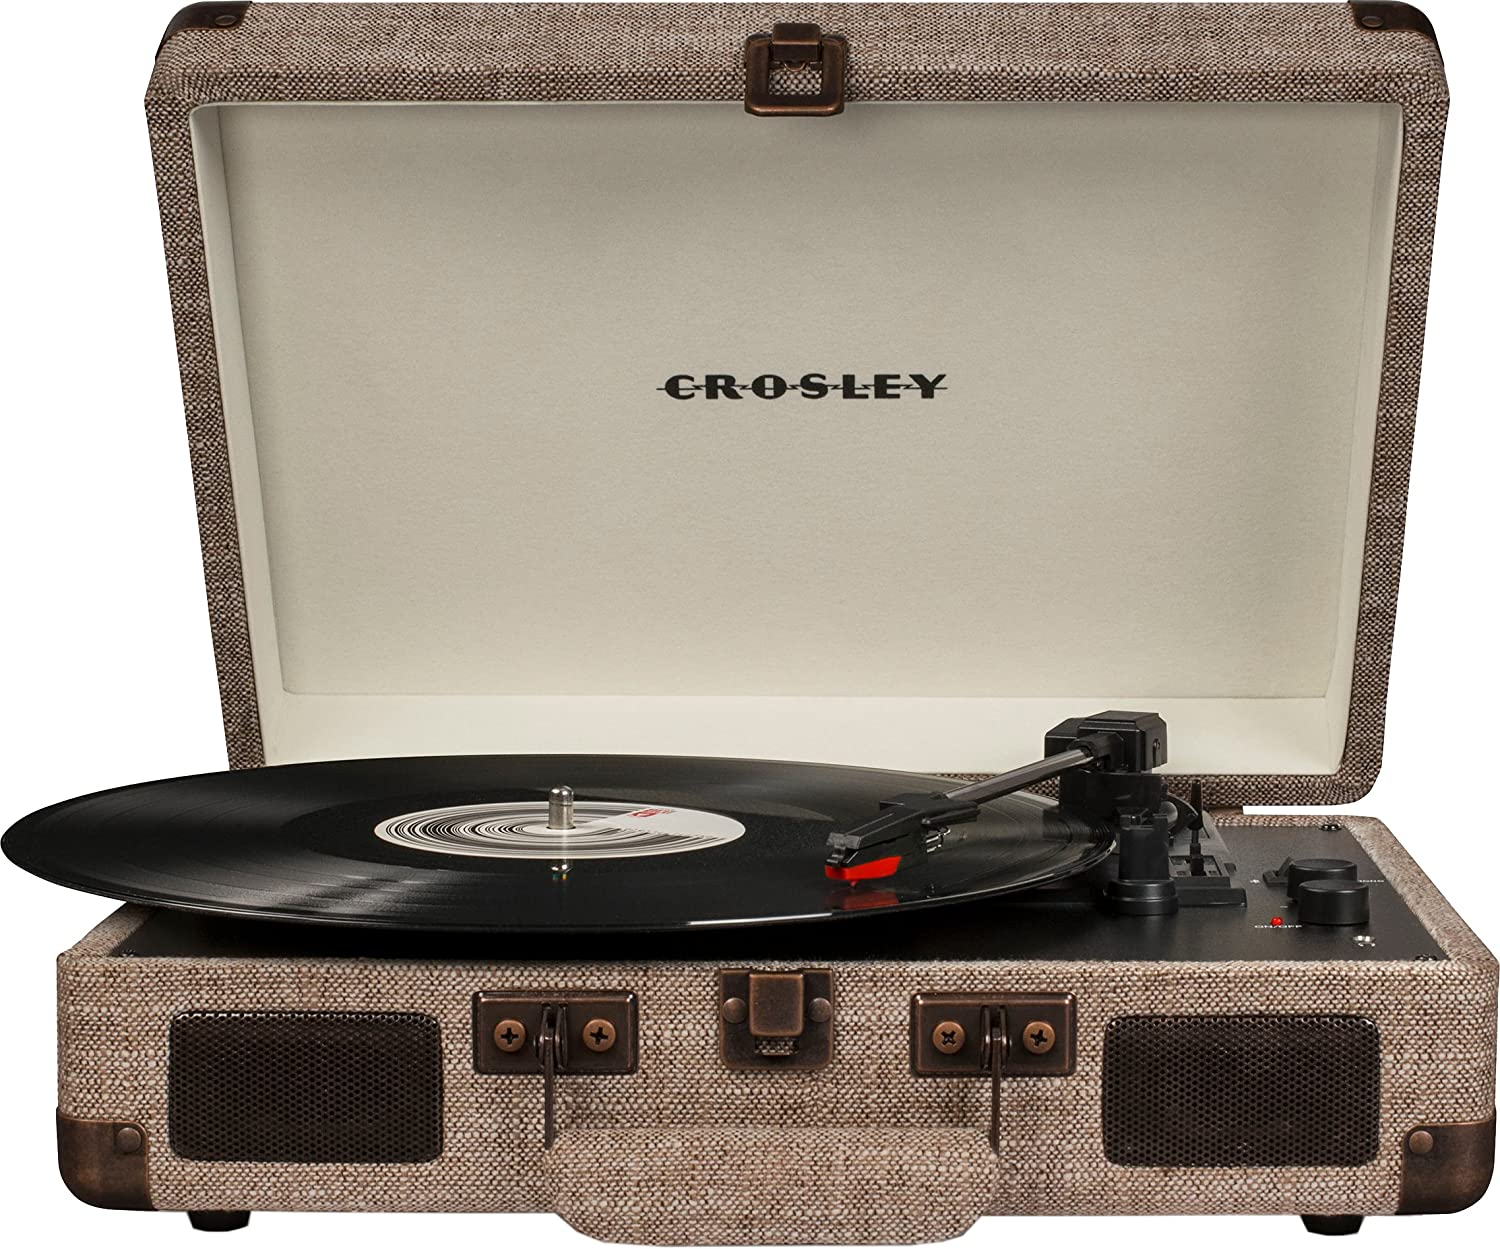 Crosley CR8005D-HA Cruiser Deluxe Portable 3-Speed Turntable